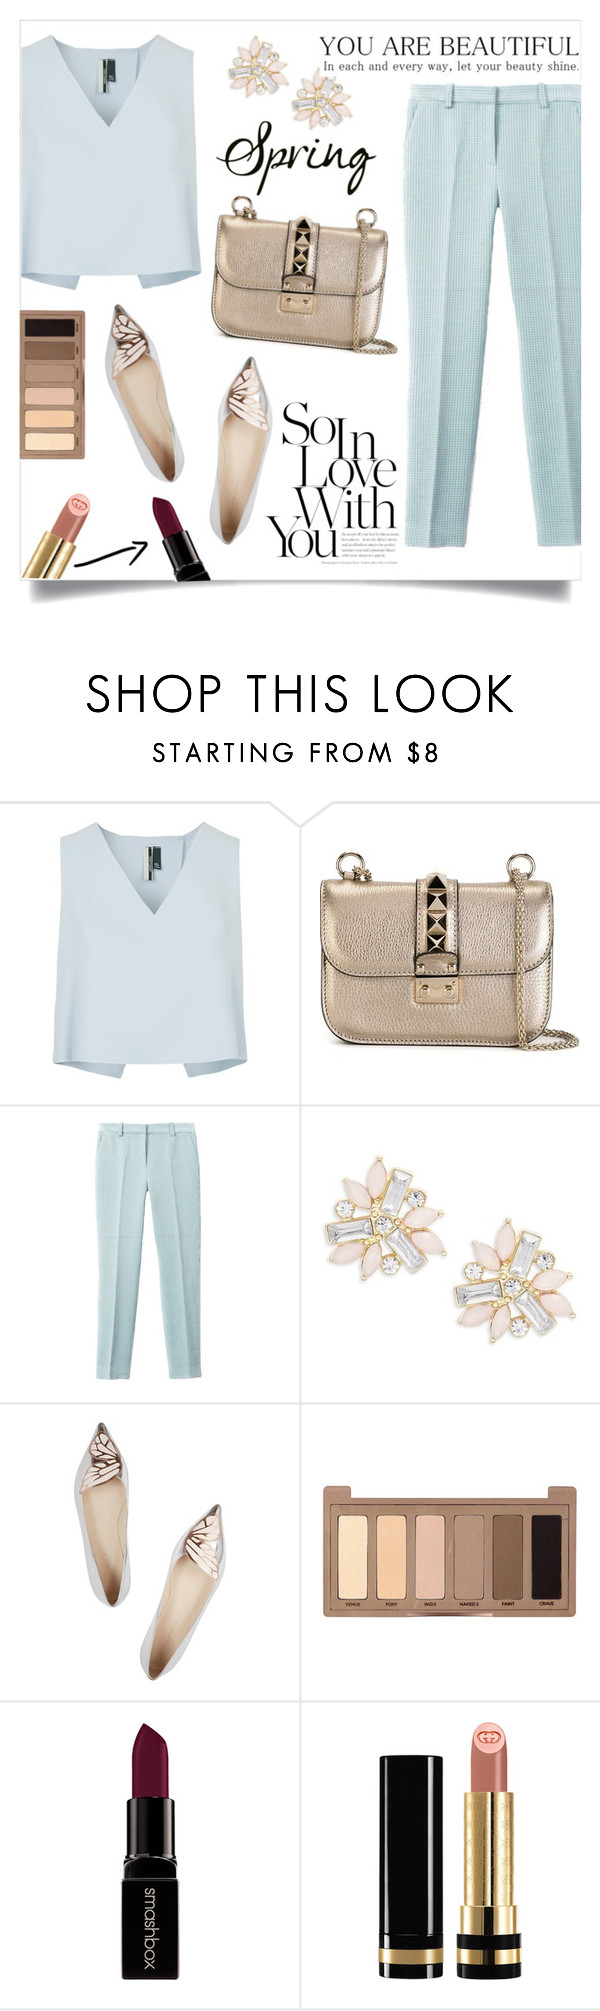 """""""Day to night: spring edition!"""" by anchilly23 ❤ liked on Polyvore featuring Topshop, Valentino, 3.1 Phillip Lim, Cara, Sophia Webster, Urban Decay, Smashbox and Gucci"""